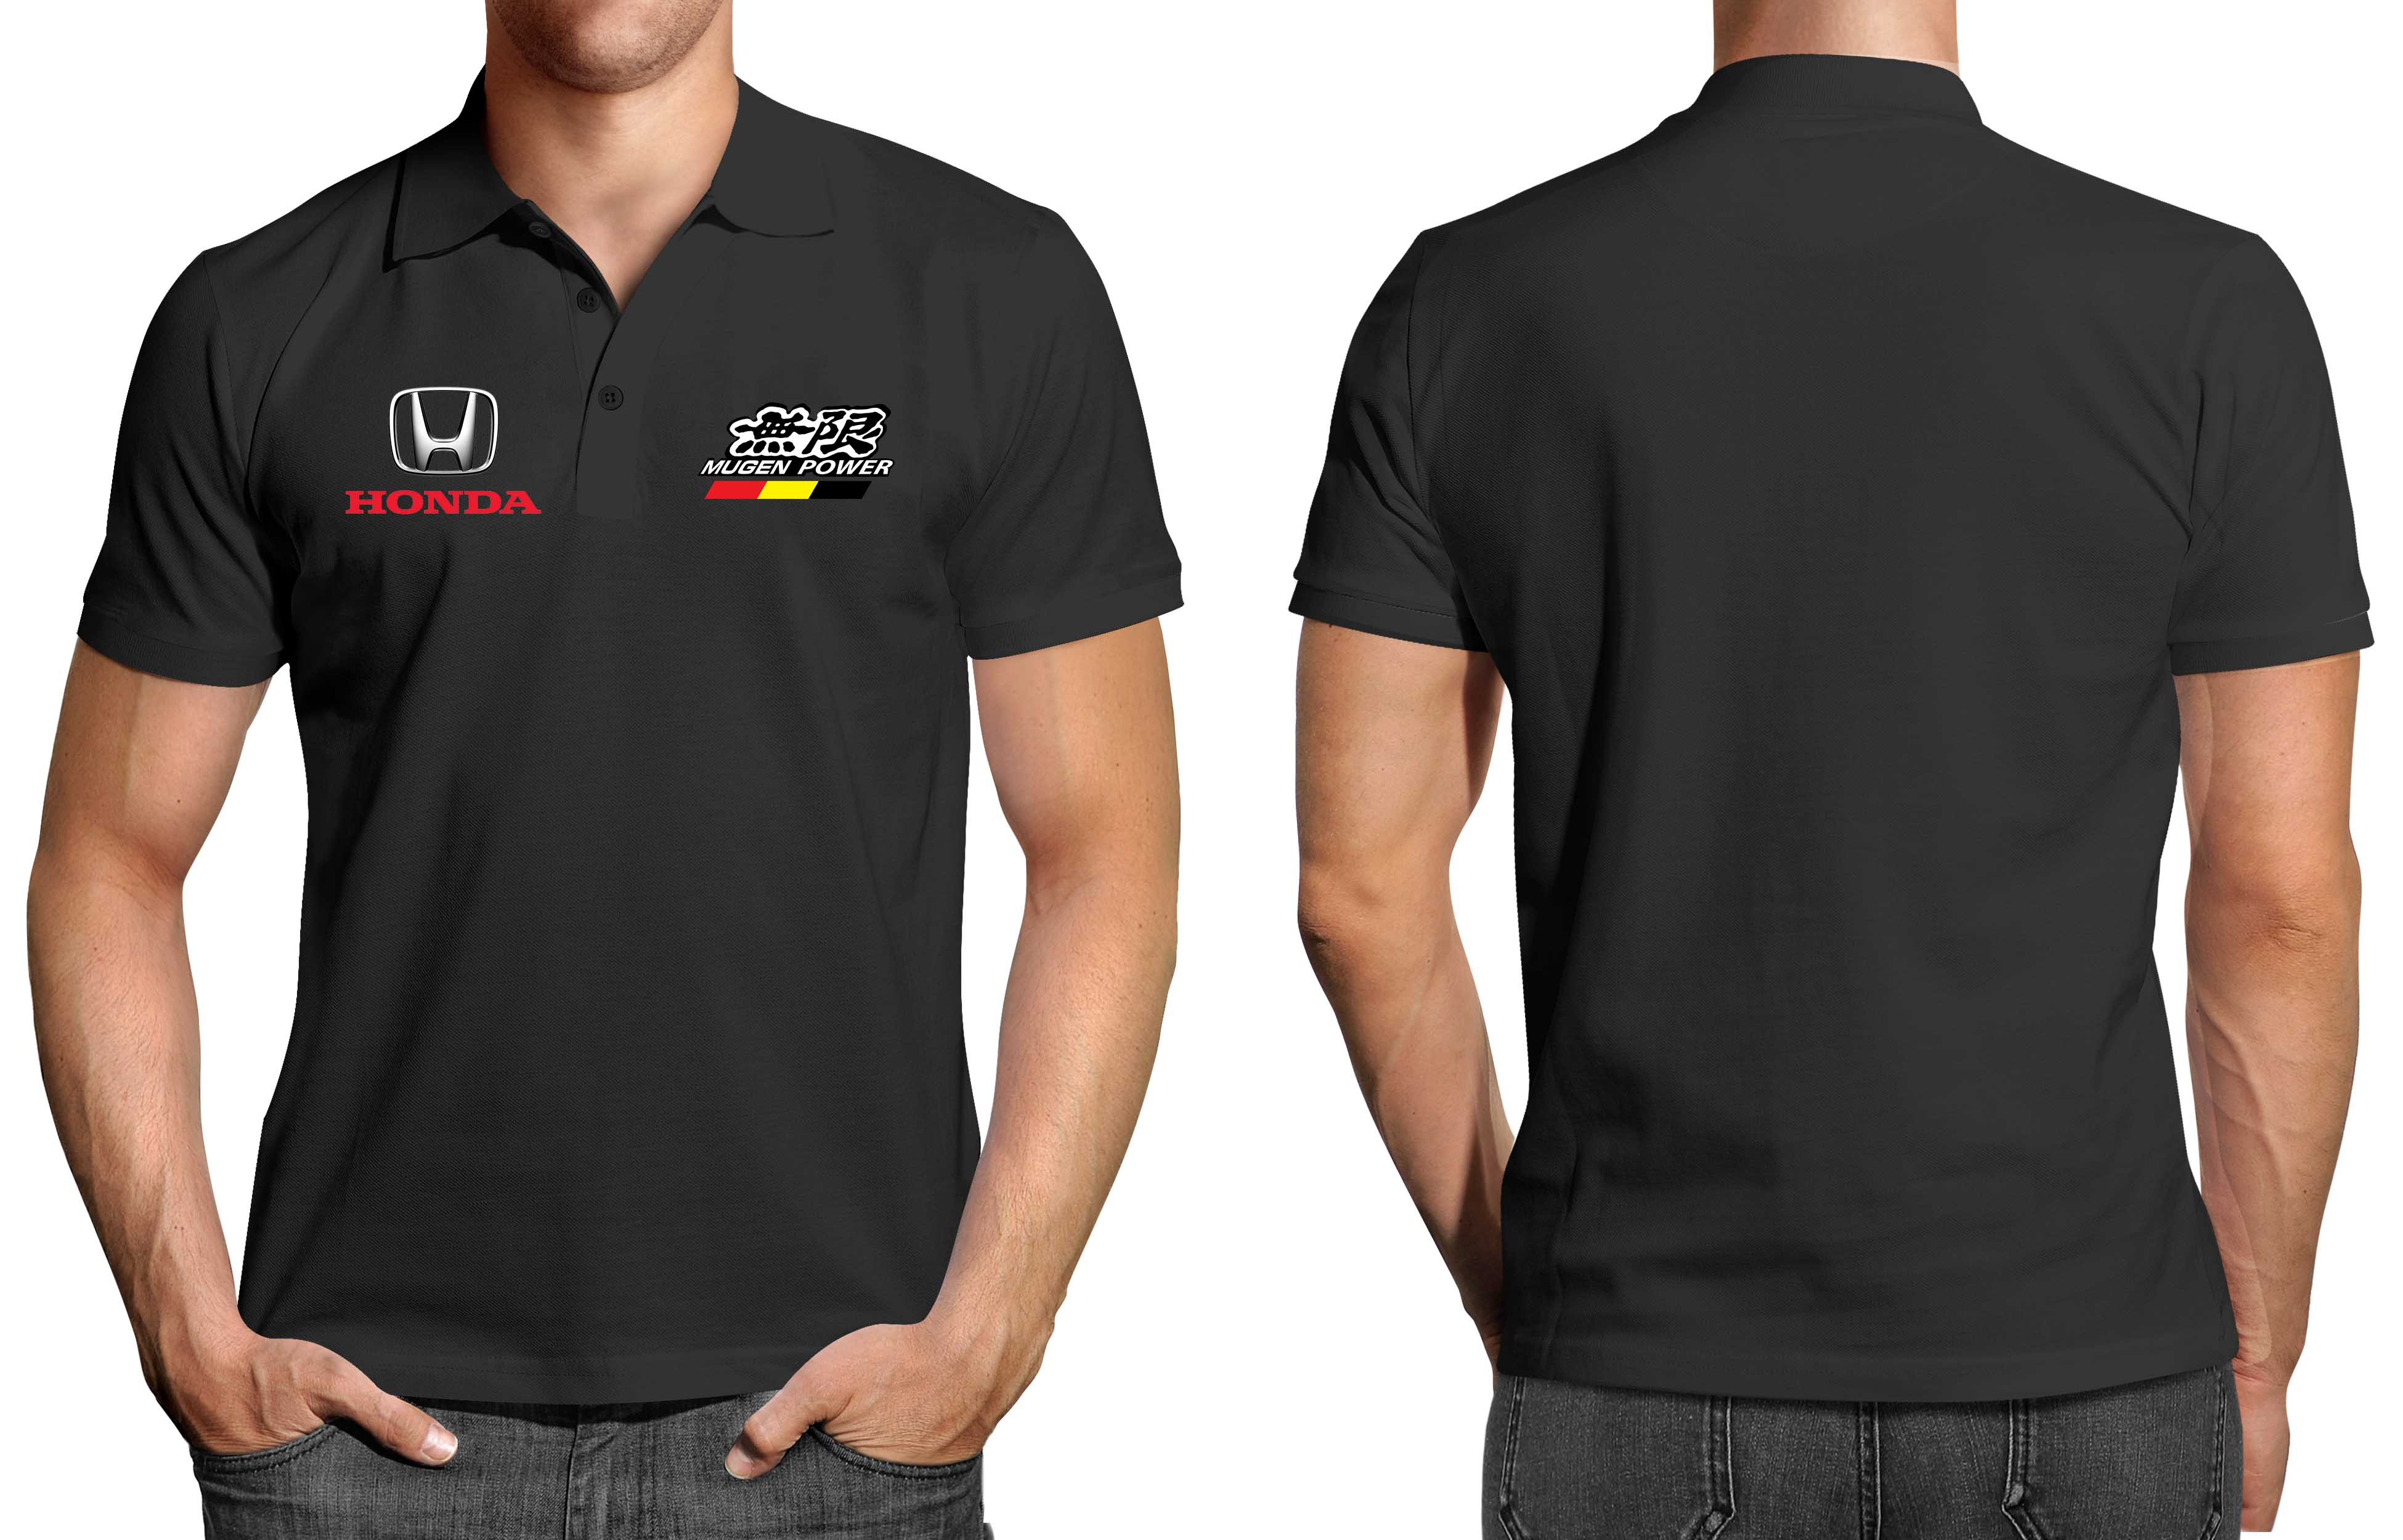 Honda Polo Shirt Mugen Civic City Ja End 10 3 2020 7 05 Pm